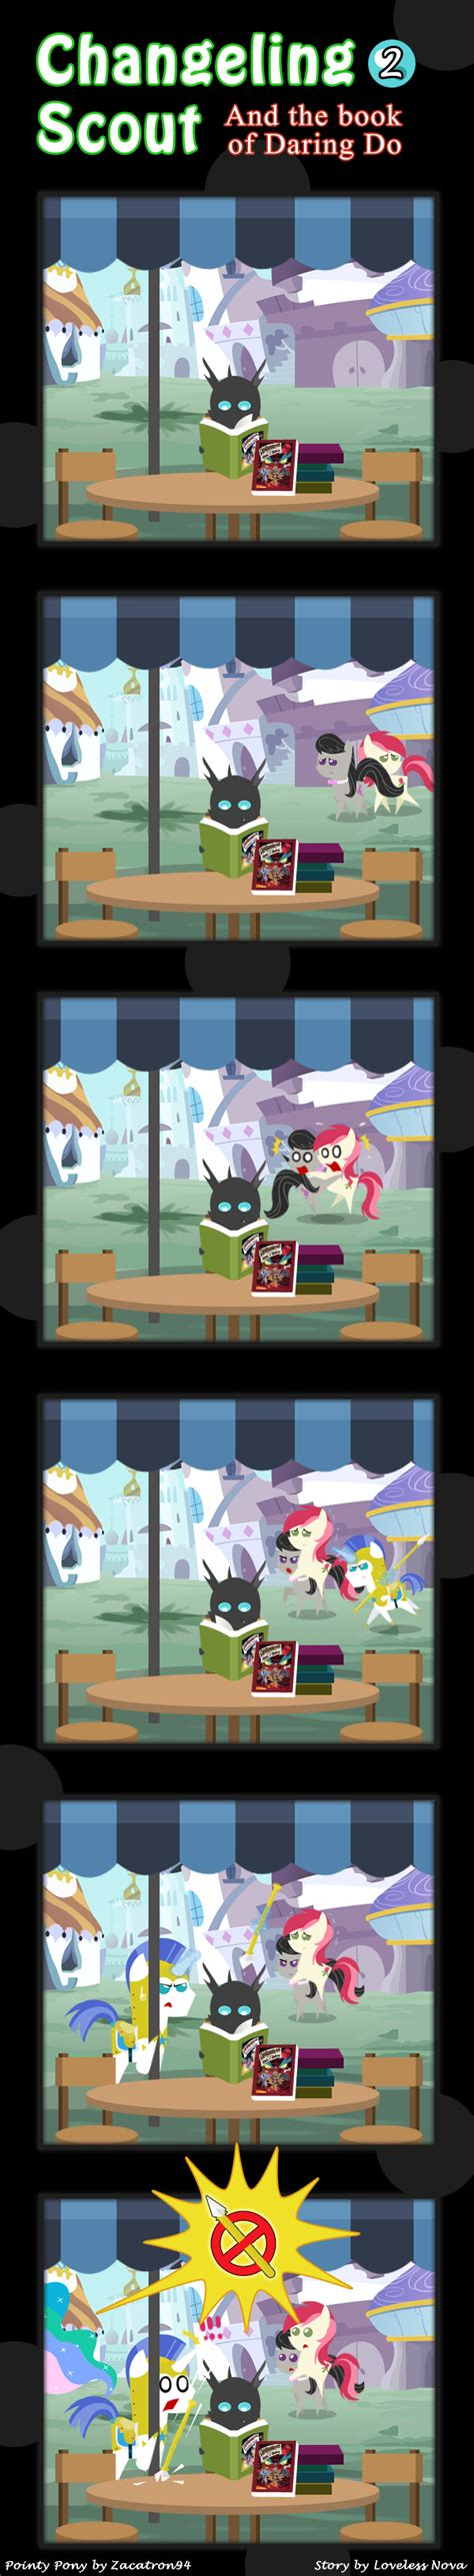 daring the candomble guard books changeling scout and the book of daring do 02 by vavacung